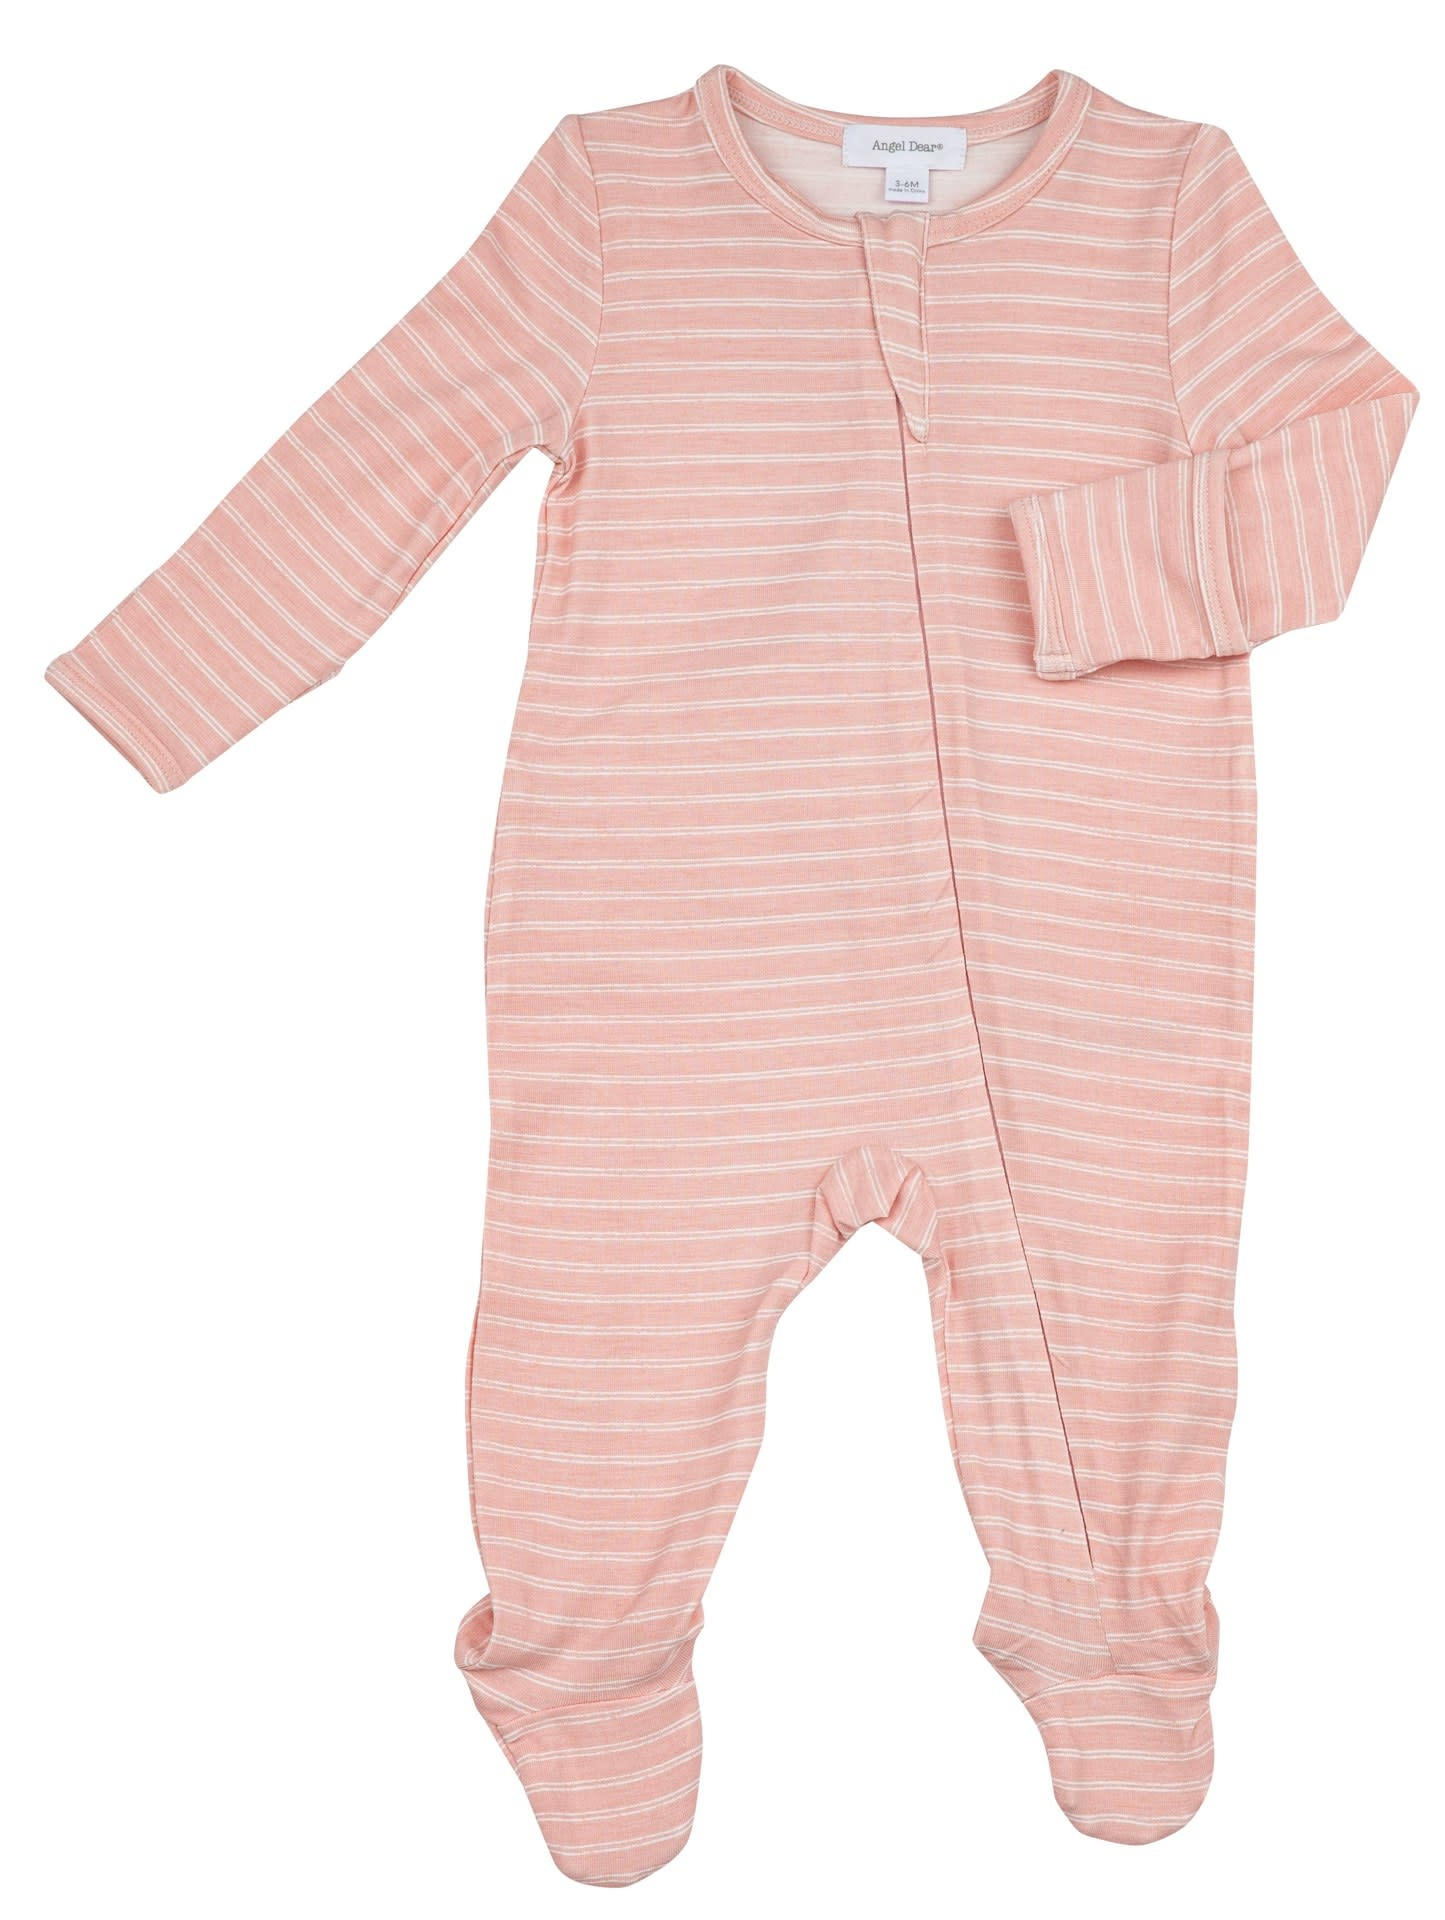 Angel Dear Angel Dear | Pink Stripe Zipper Footie